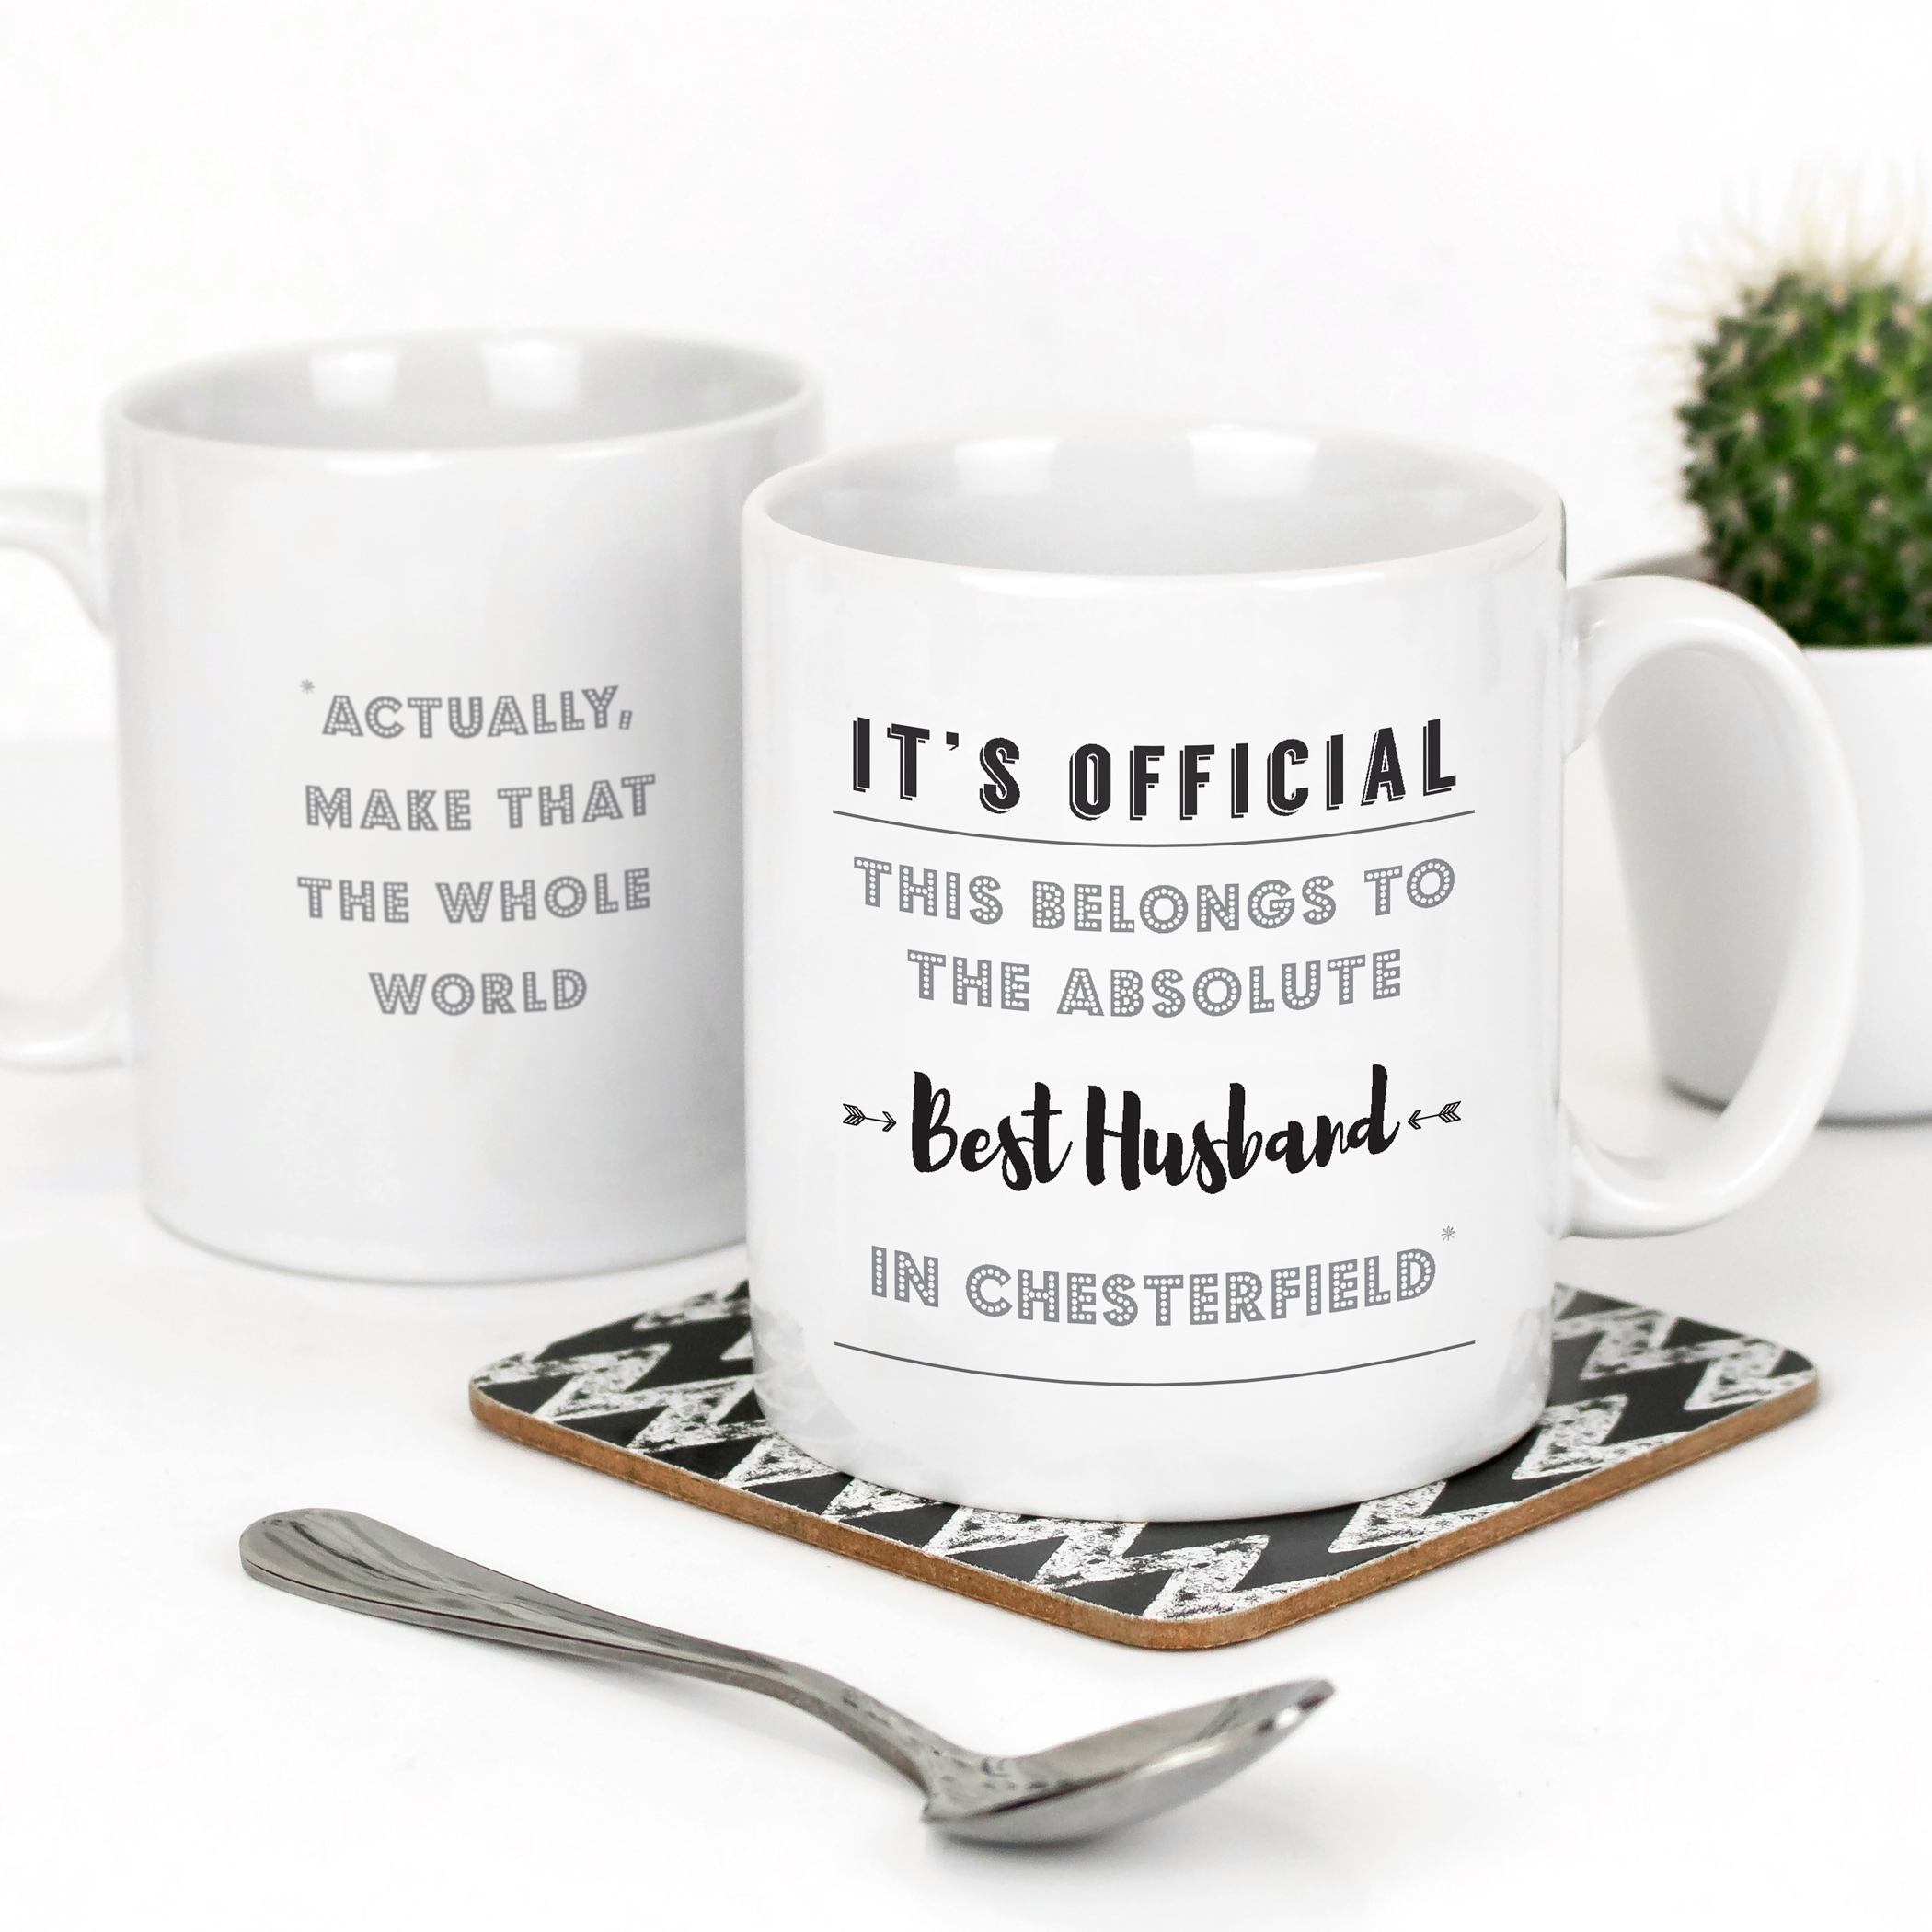 Absolute Best Husband in Chesterfield Mug